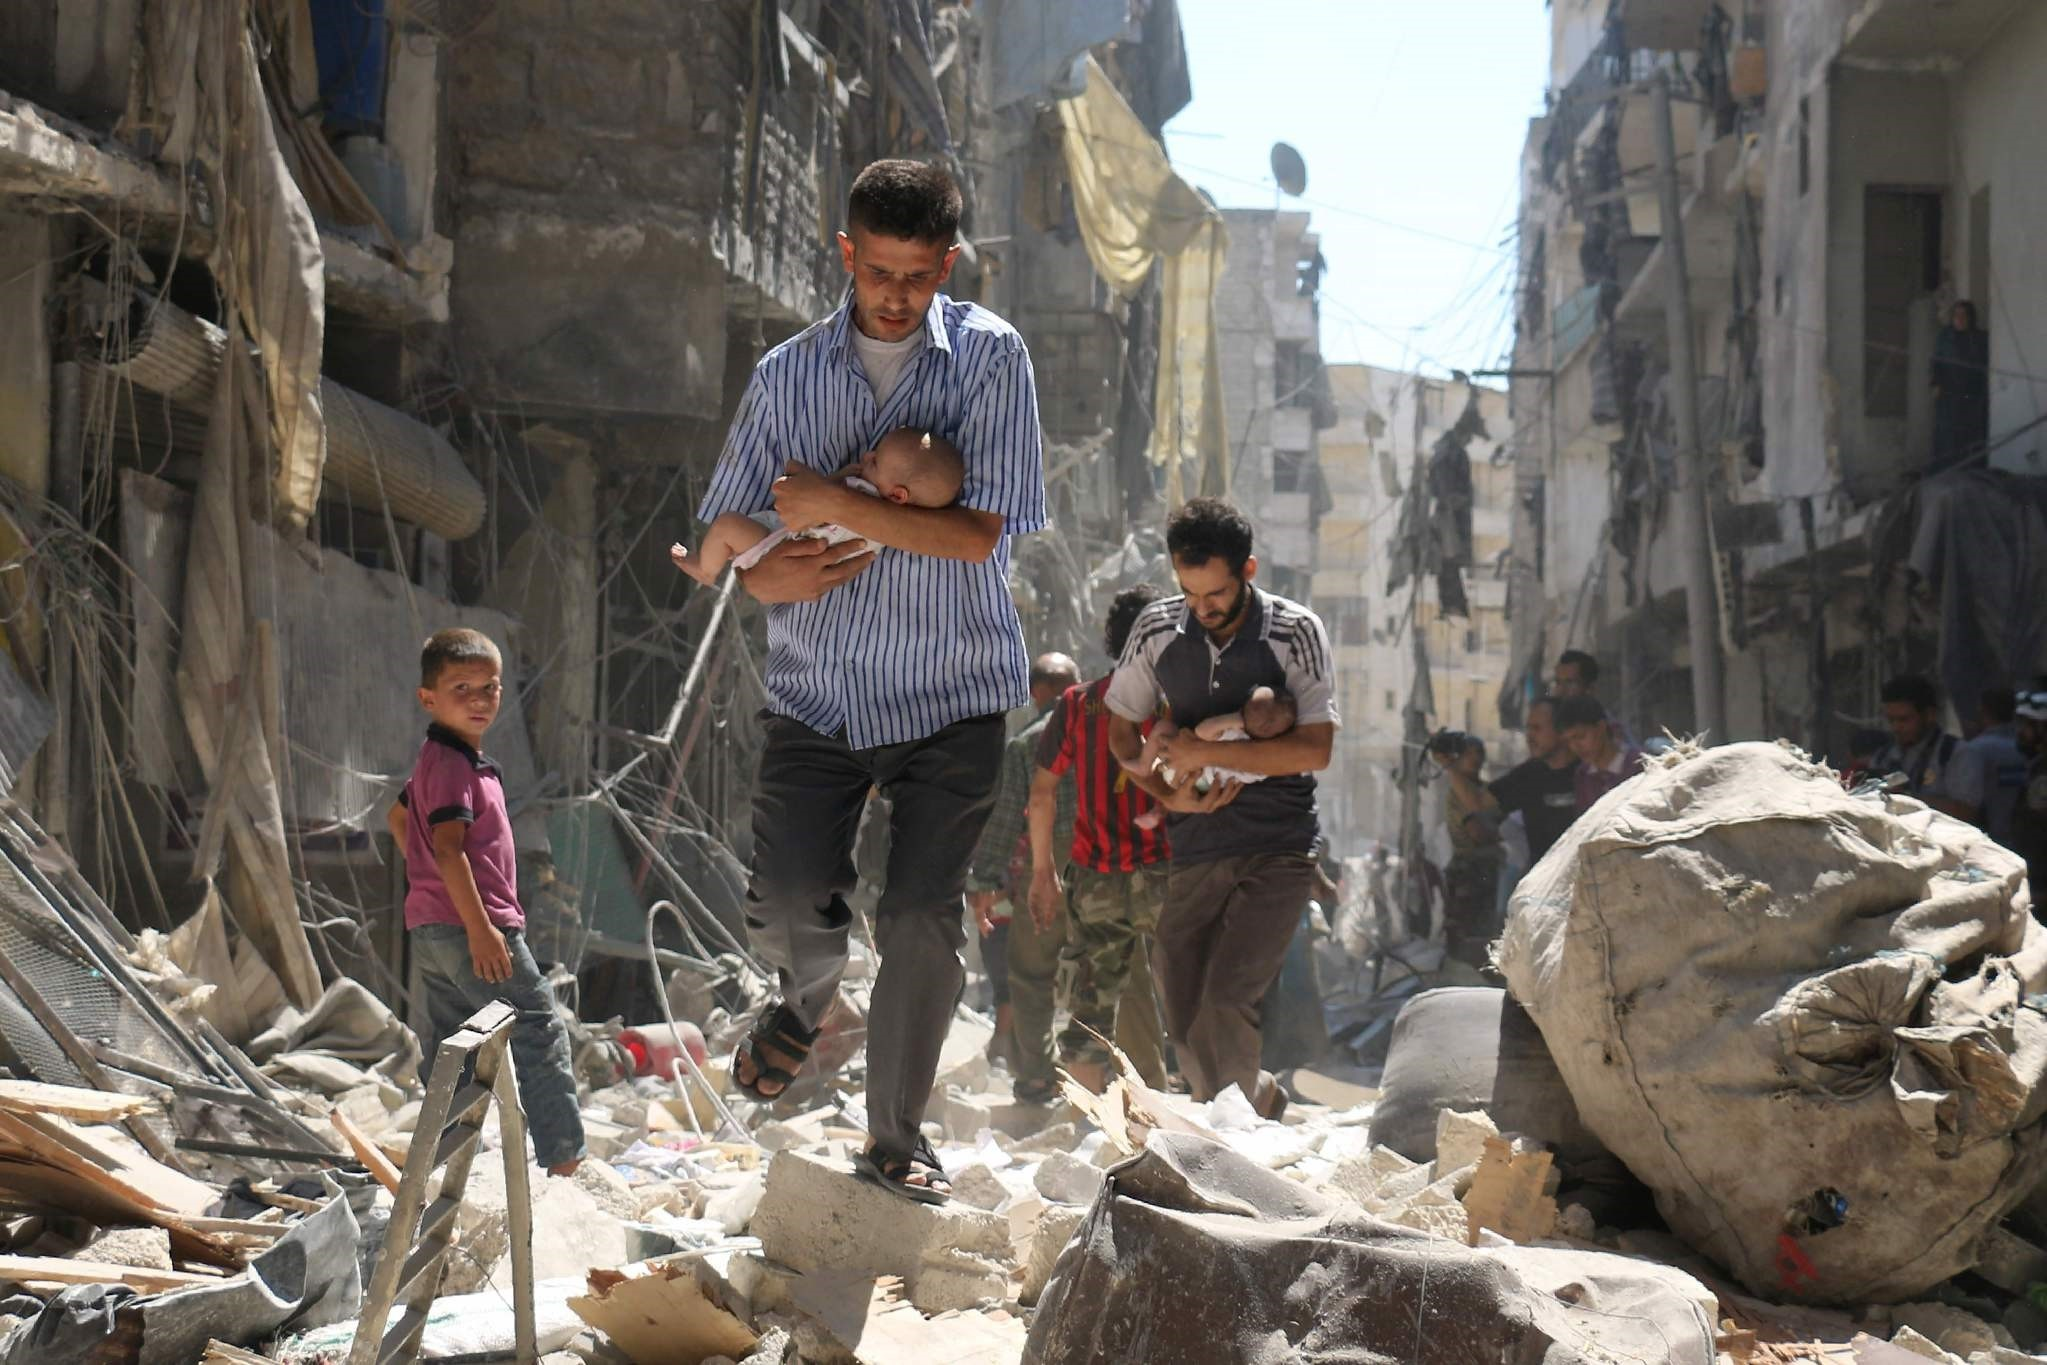 Syrian men carrying babies make their way through the rubble of destroyed buildings following a reported air strike on Aleppo. (AFP Photo)